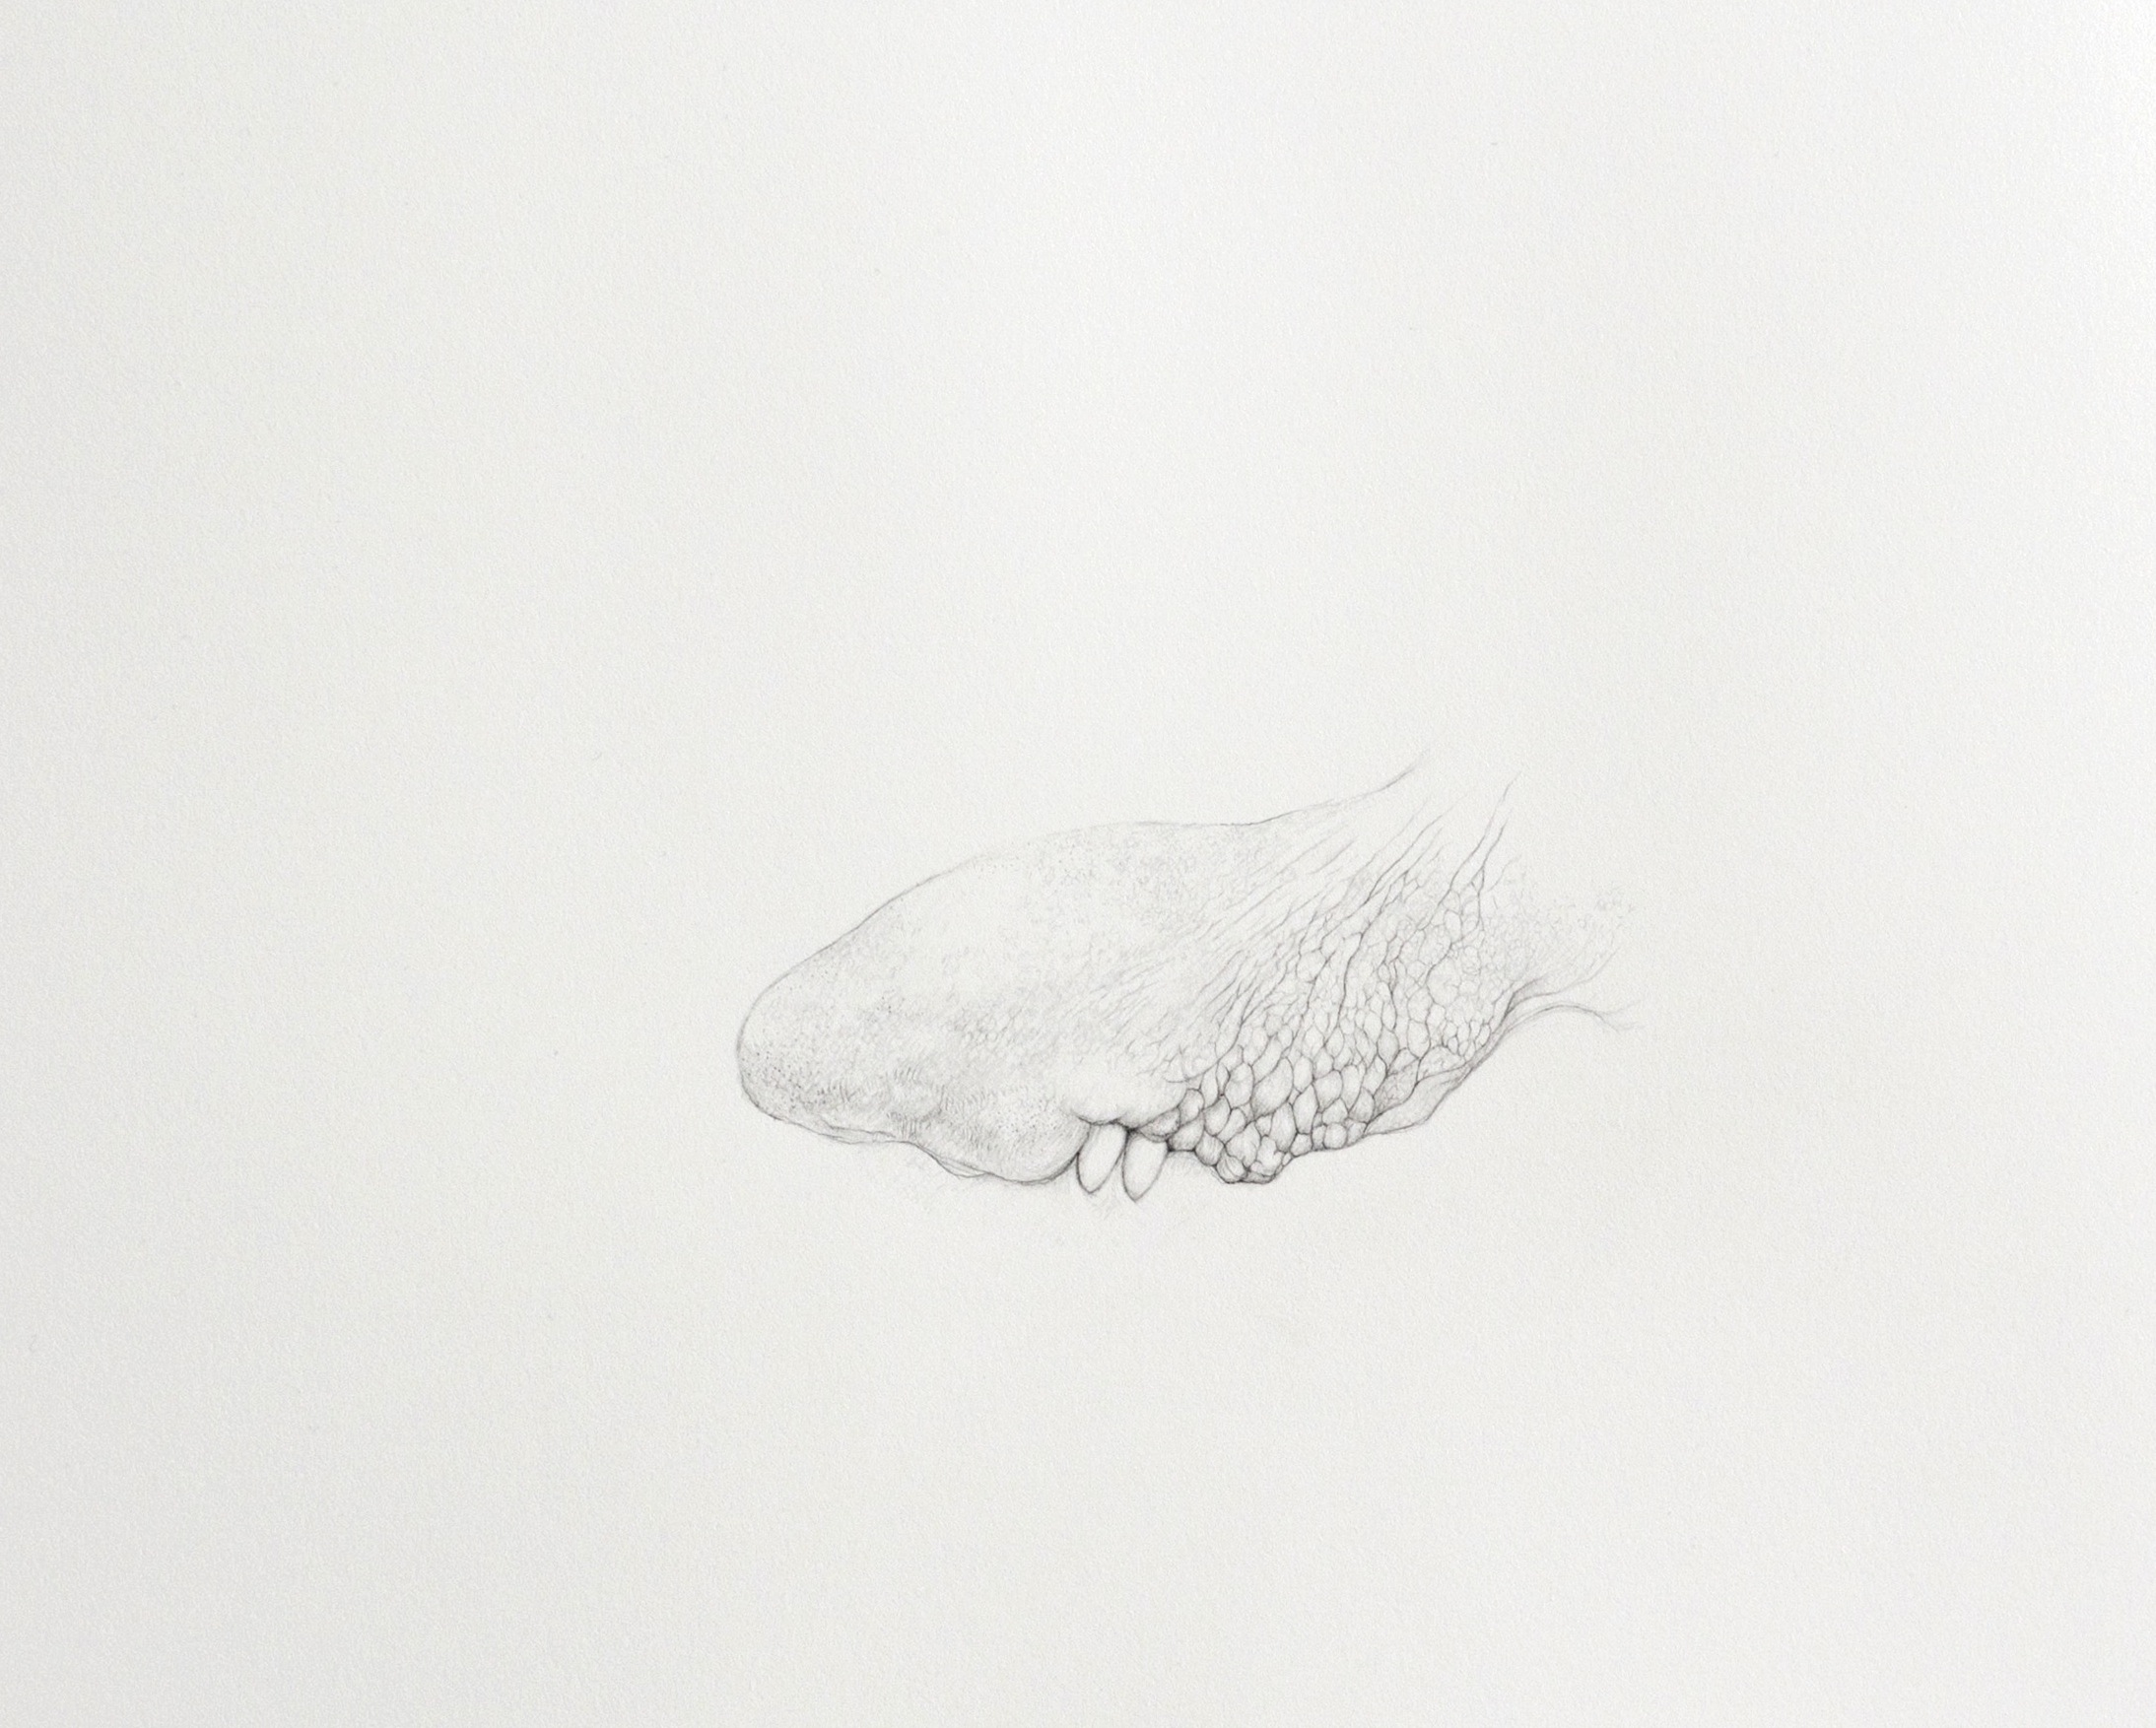 Foreign Tongue, graphite on paper,  42 x 41 cm, 2012